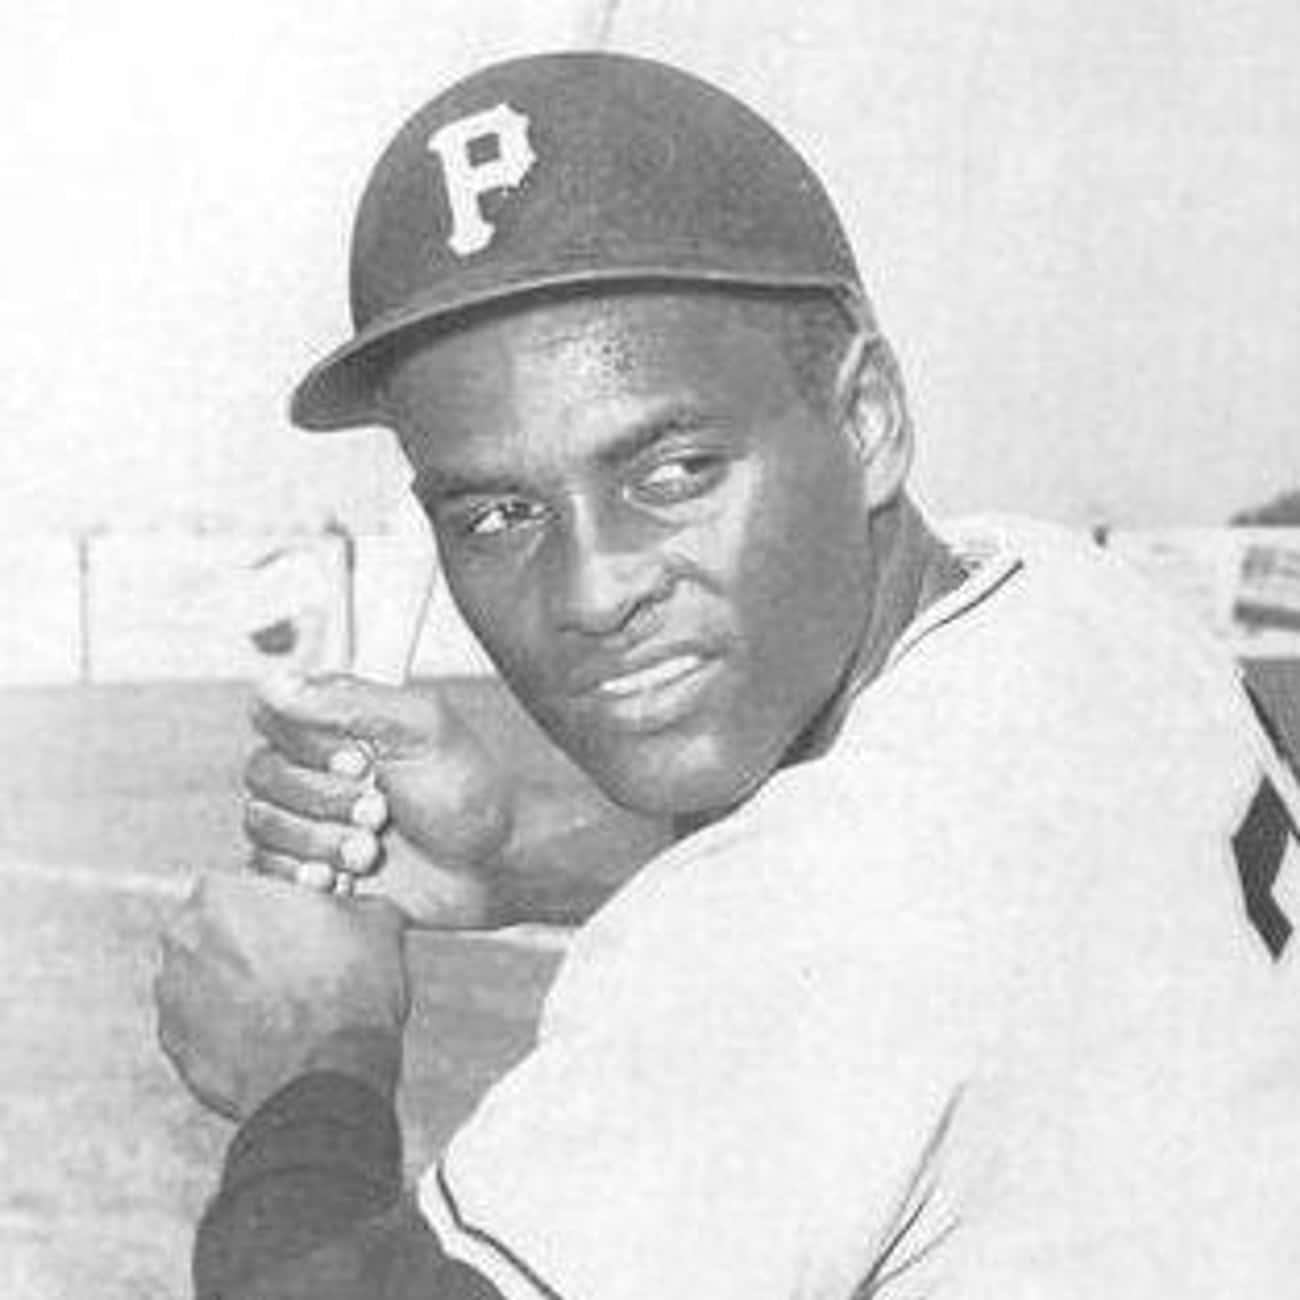 Roberto Clemente is listed (or ranked) 3 on the list 25 Professional Athletes Who Died Young